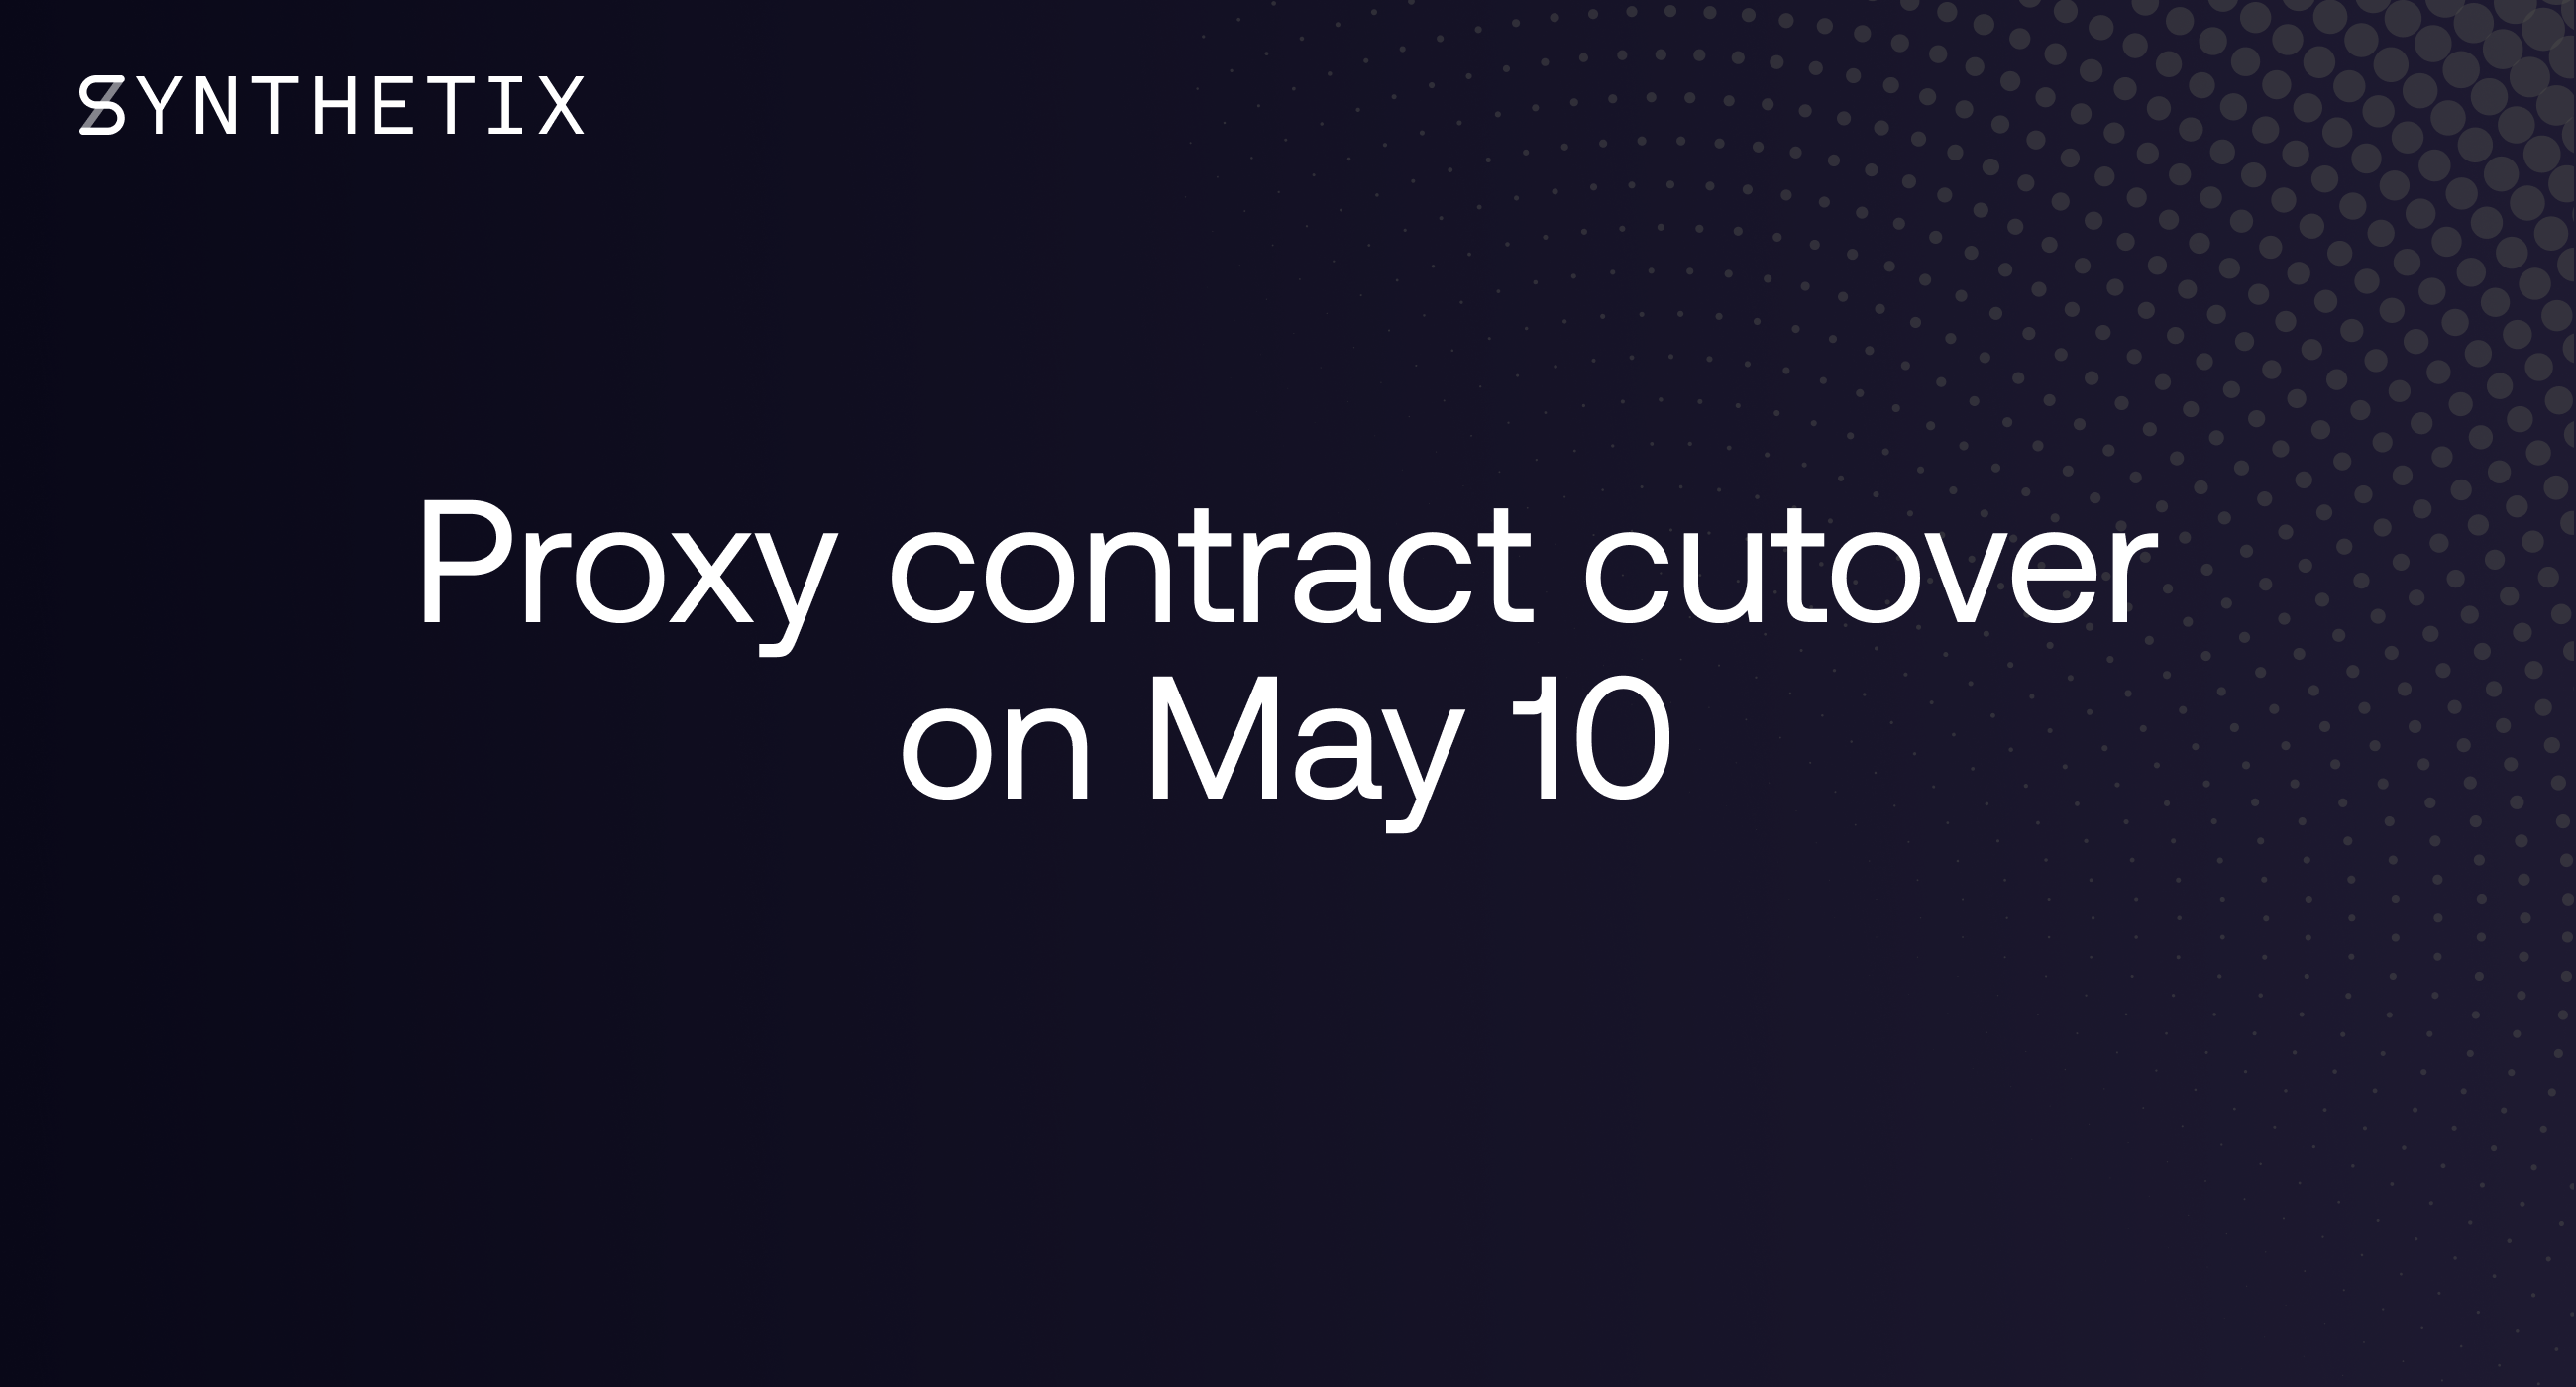 Proxy contract cutover on May 10